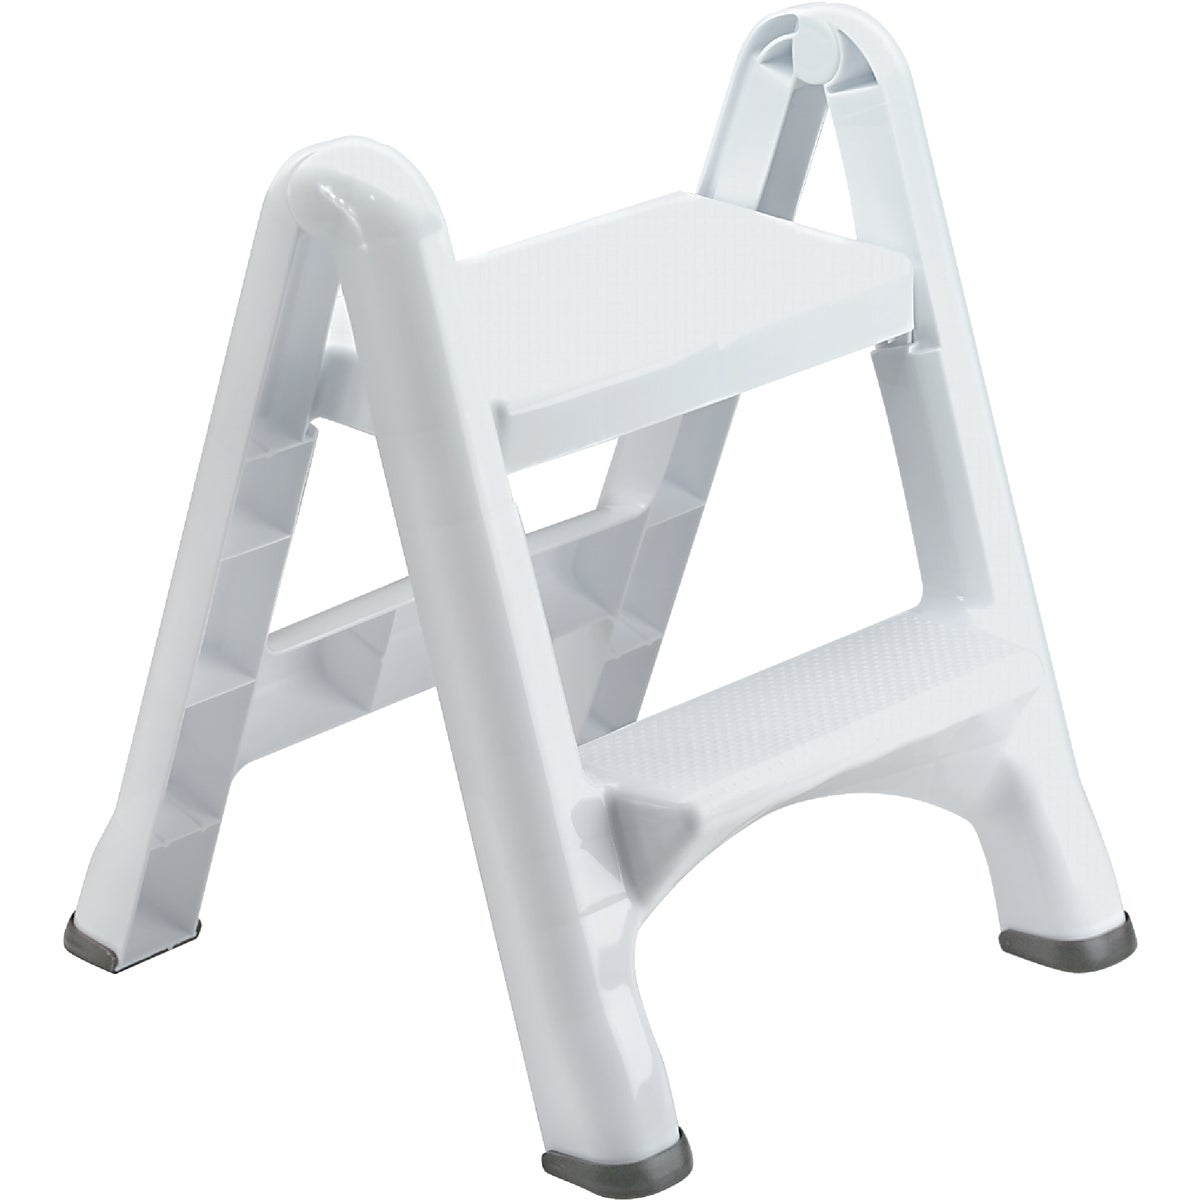 WHITE 2-STEP STOOL - 420903-WHT by Rubbermaid Home